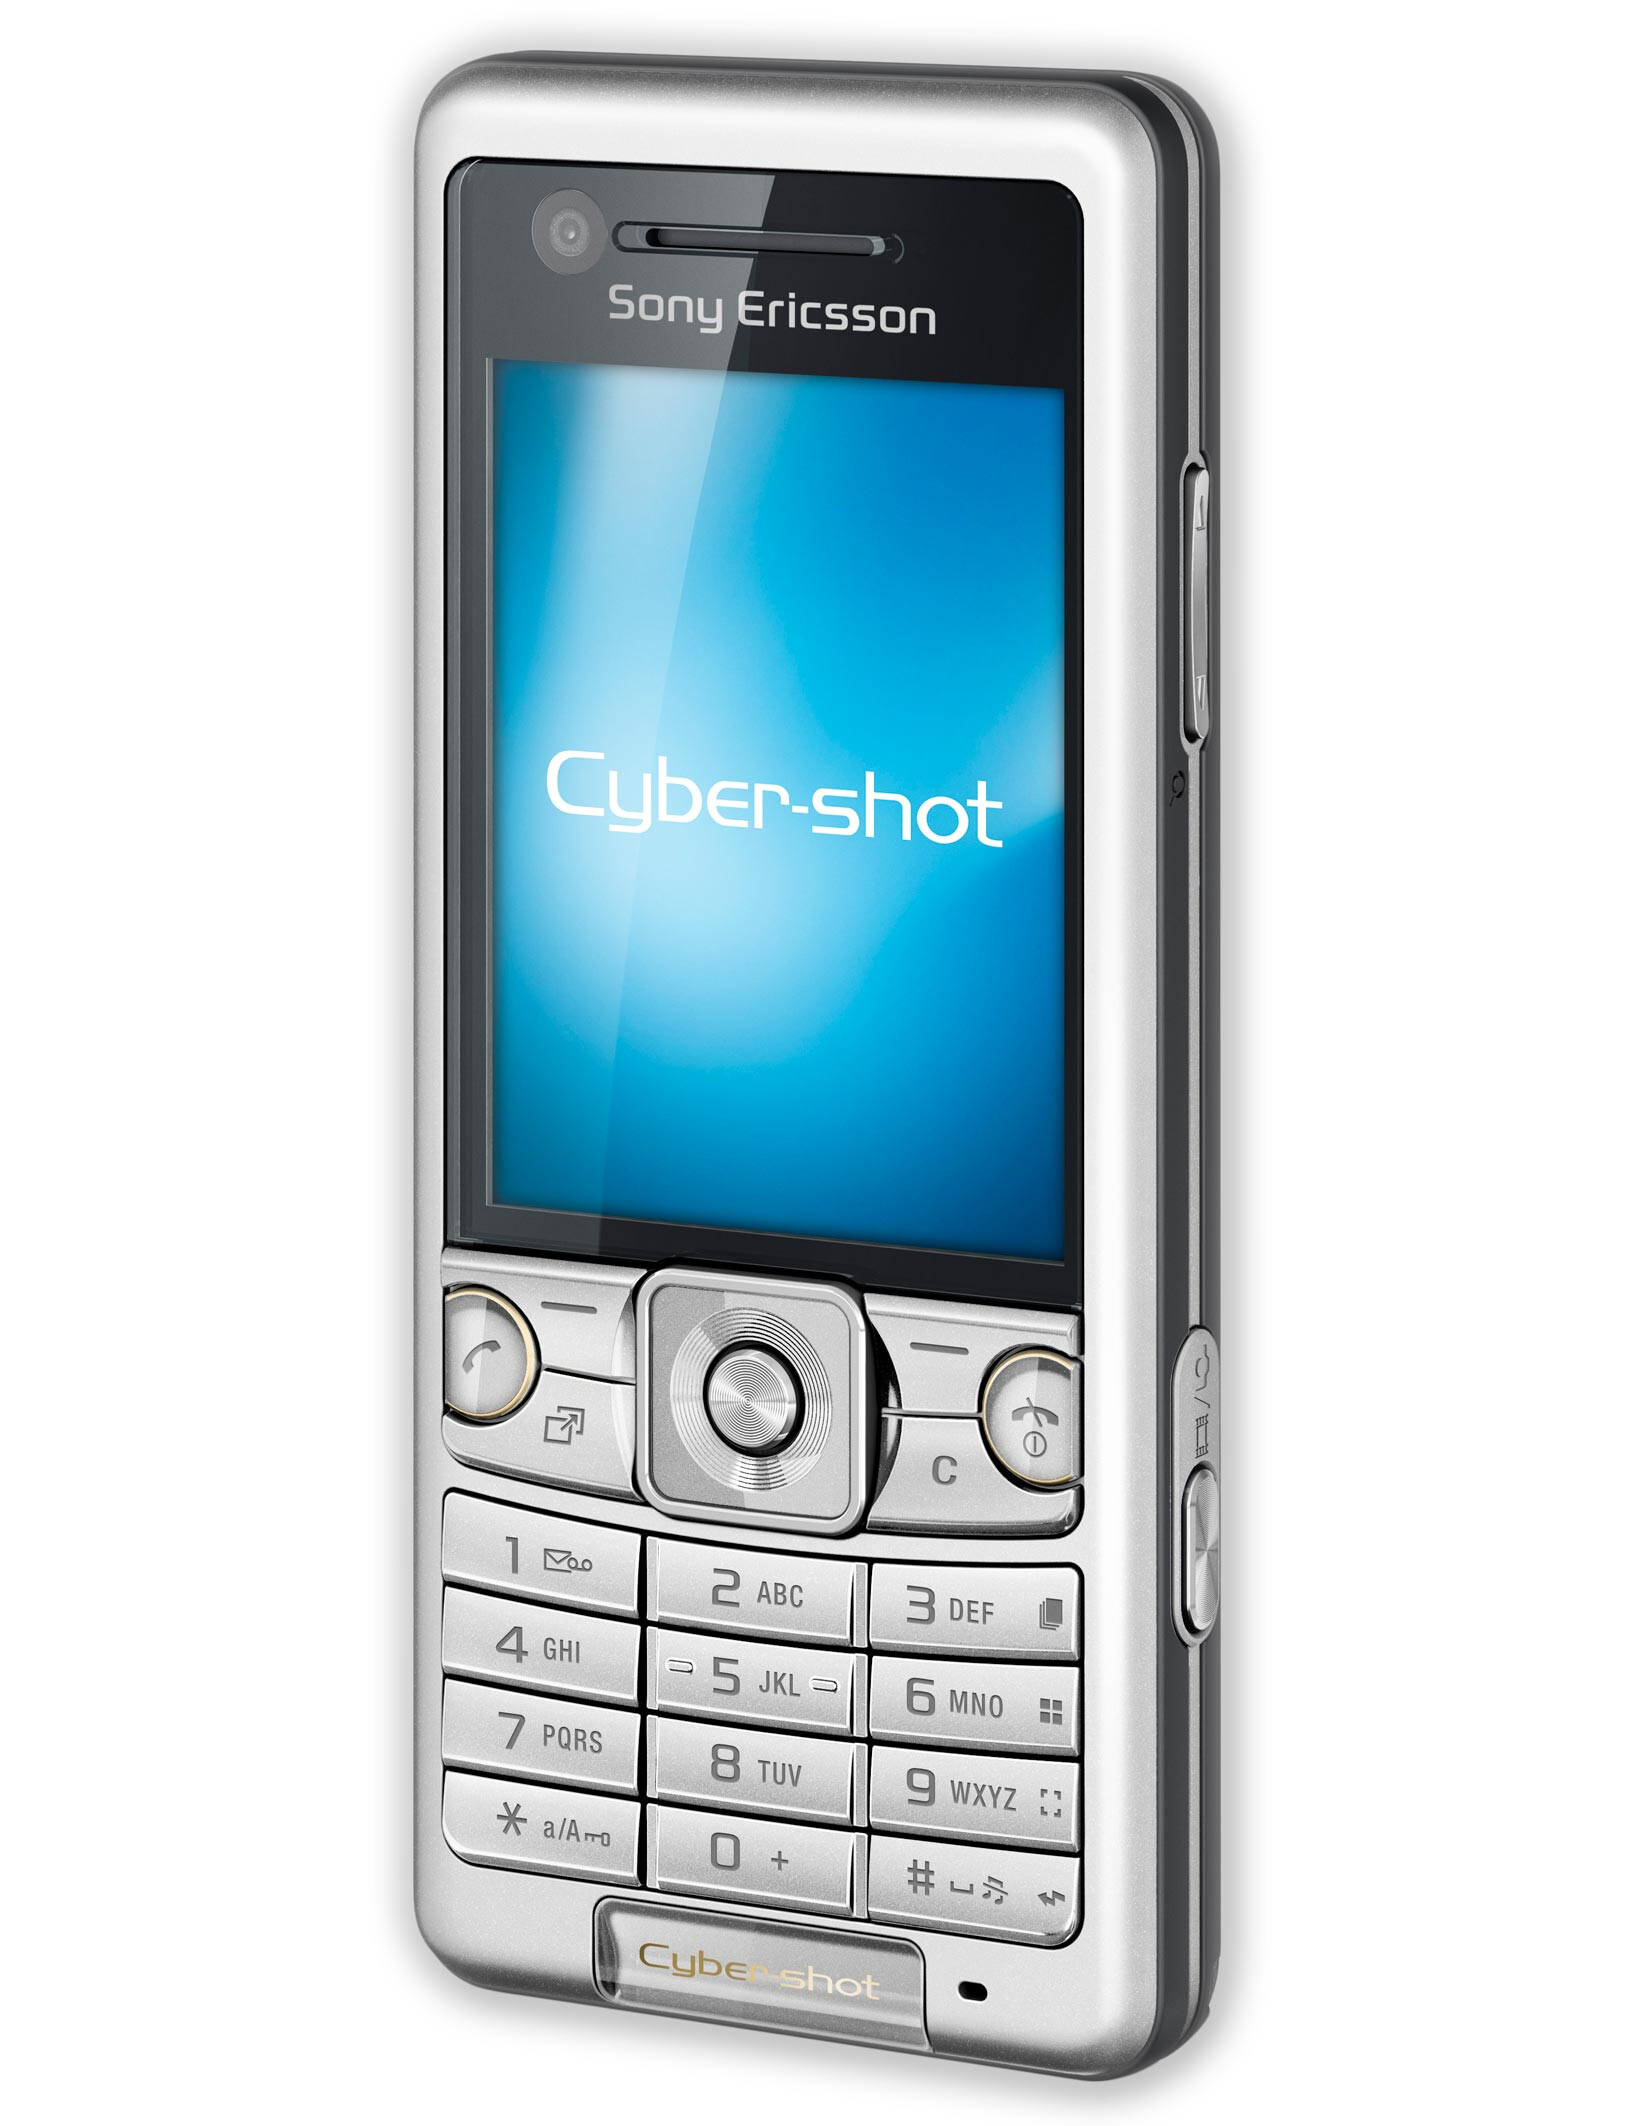 List of Sony Ericsson products